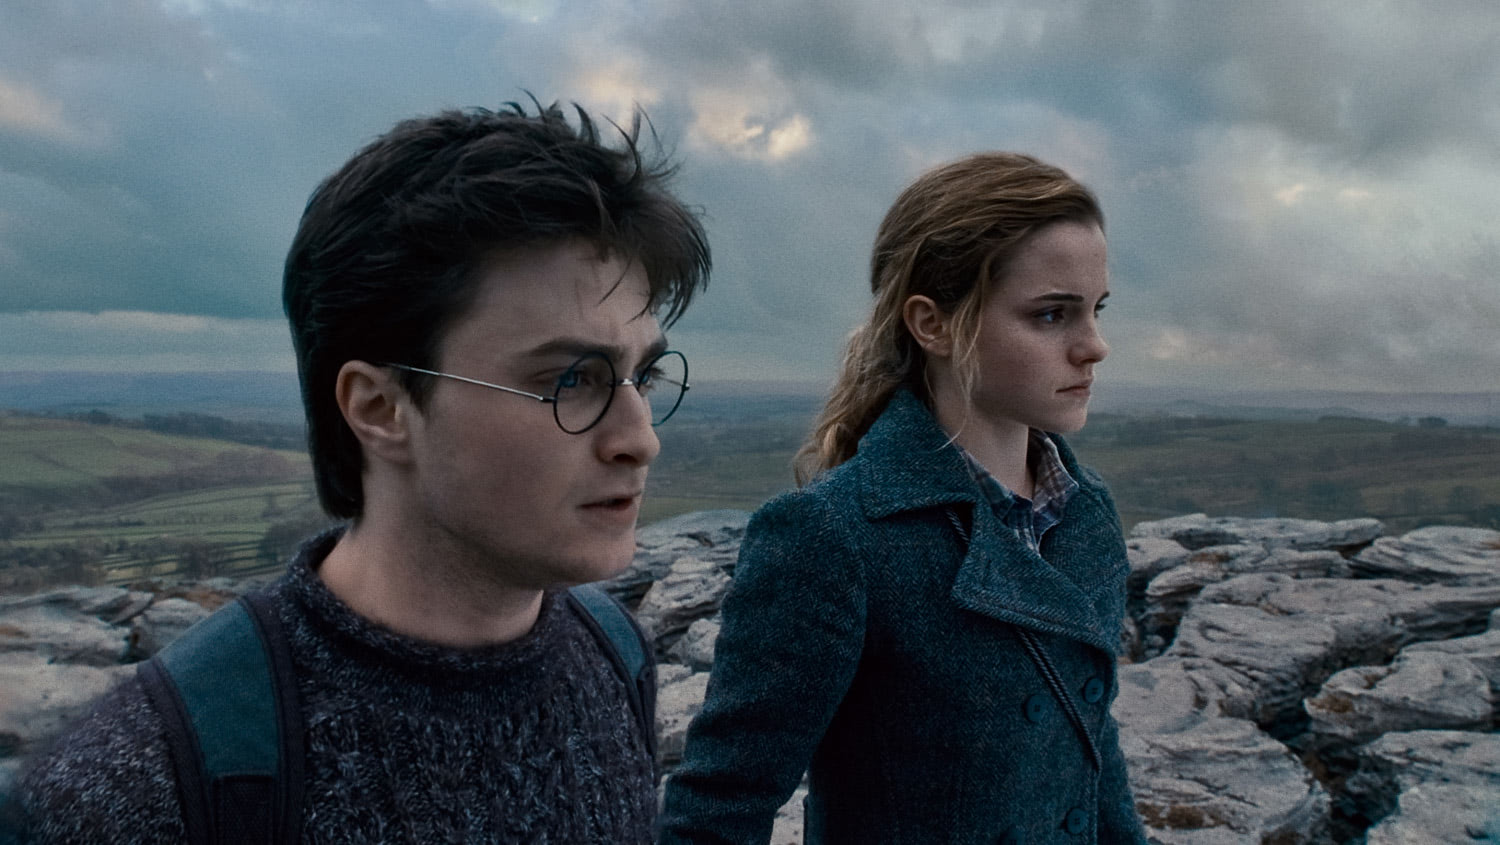 Harry and Hermione on a cliff